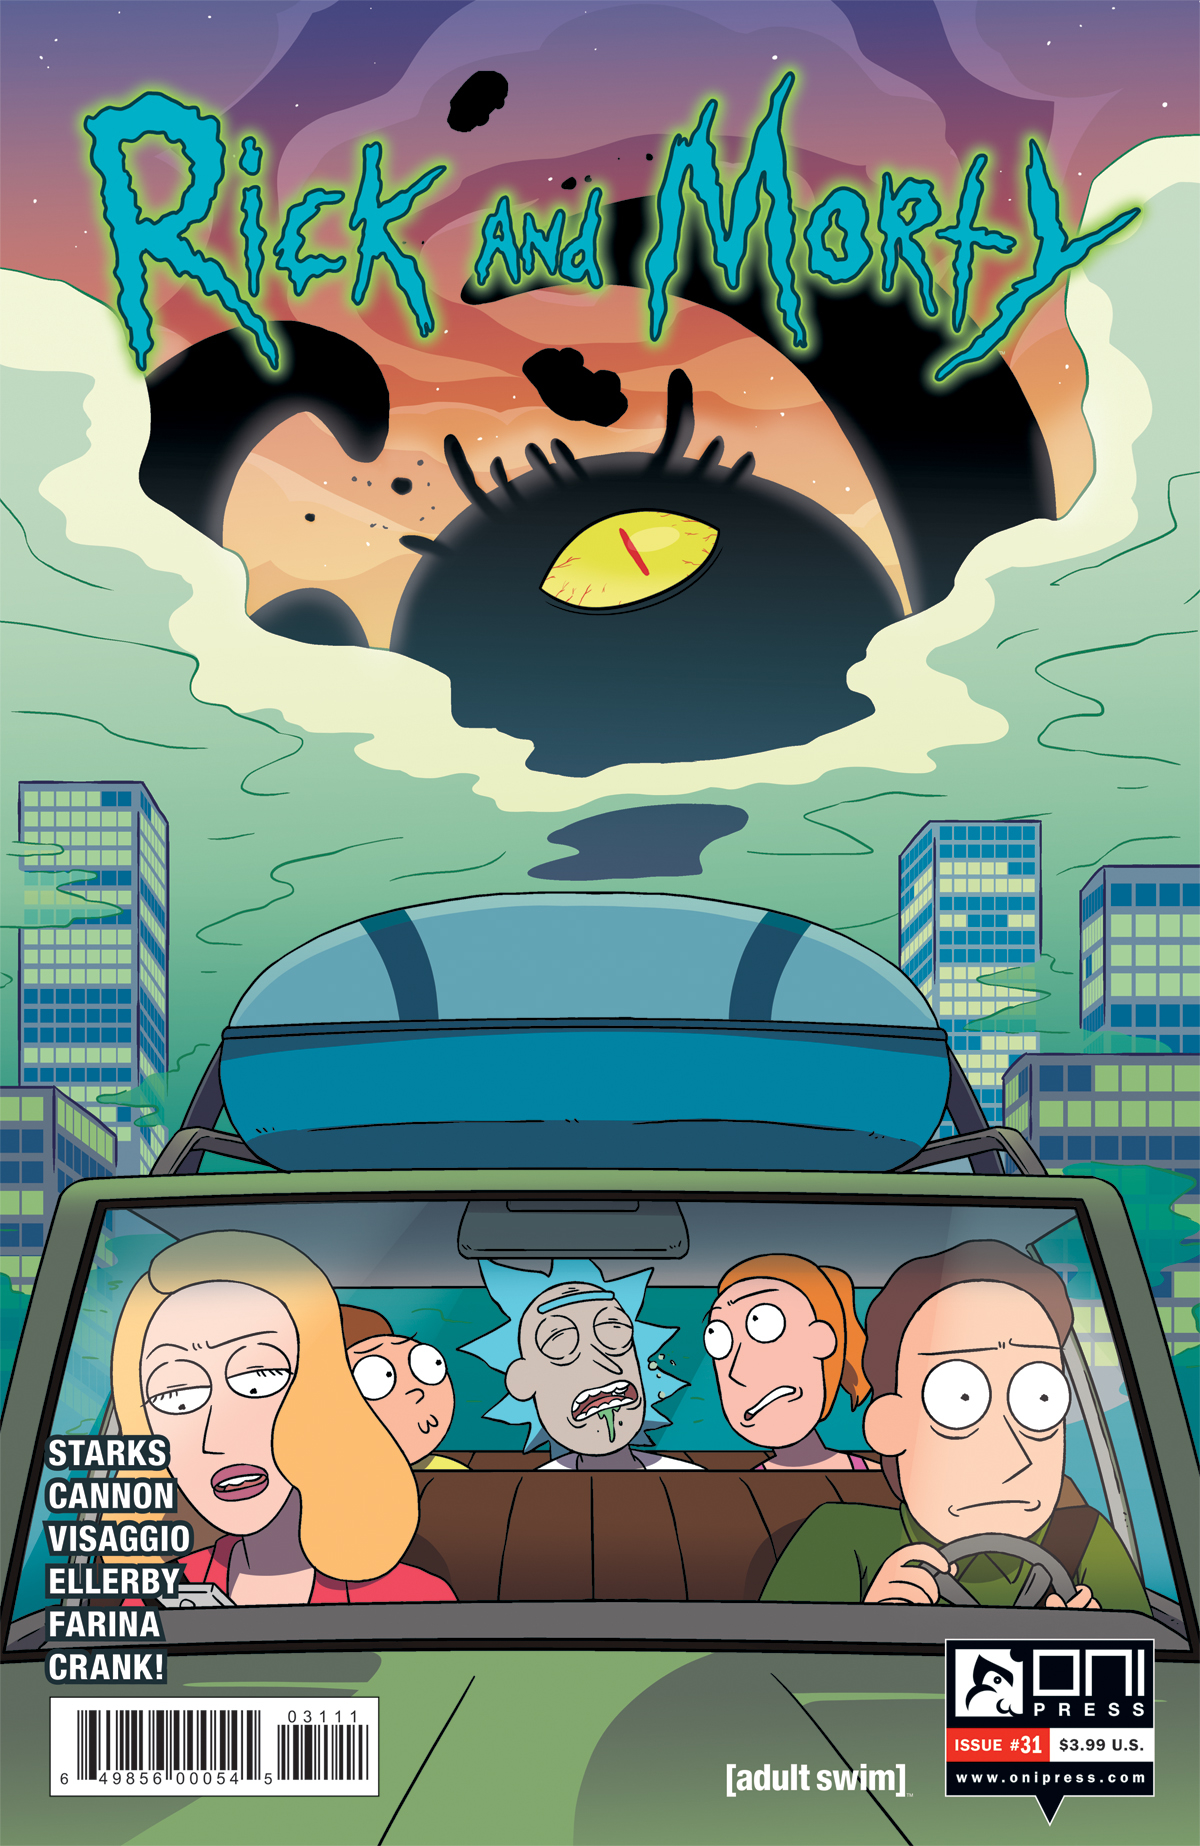 Rick and Morty Issue 31